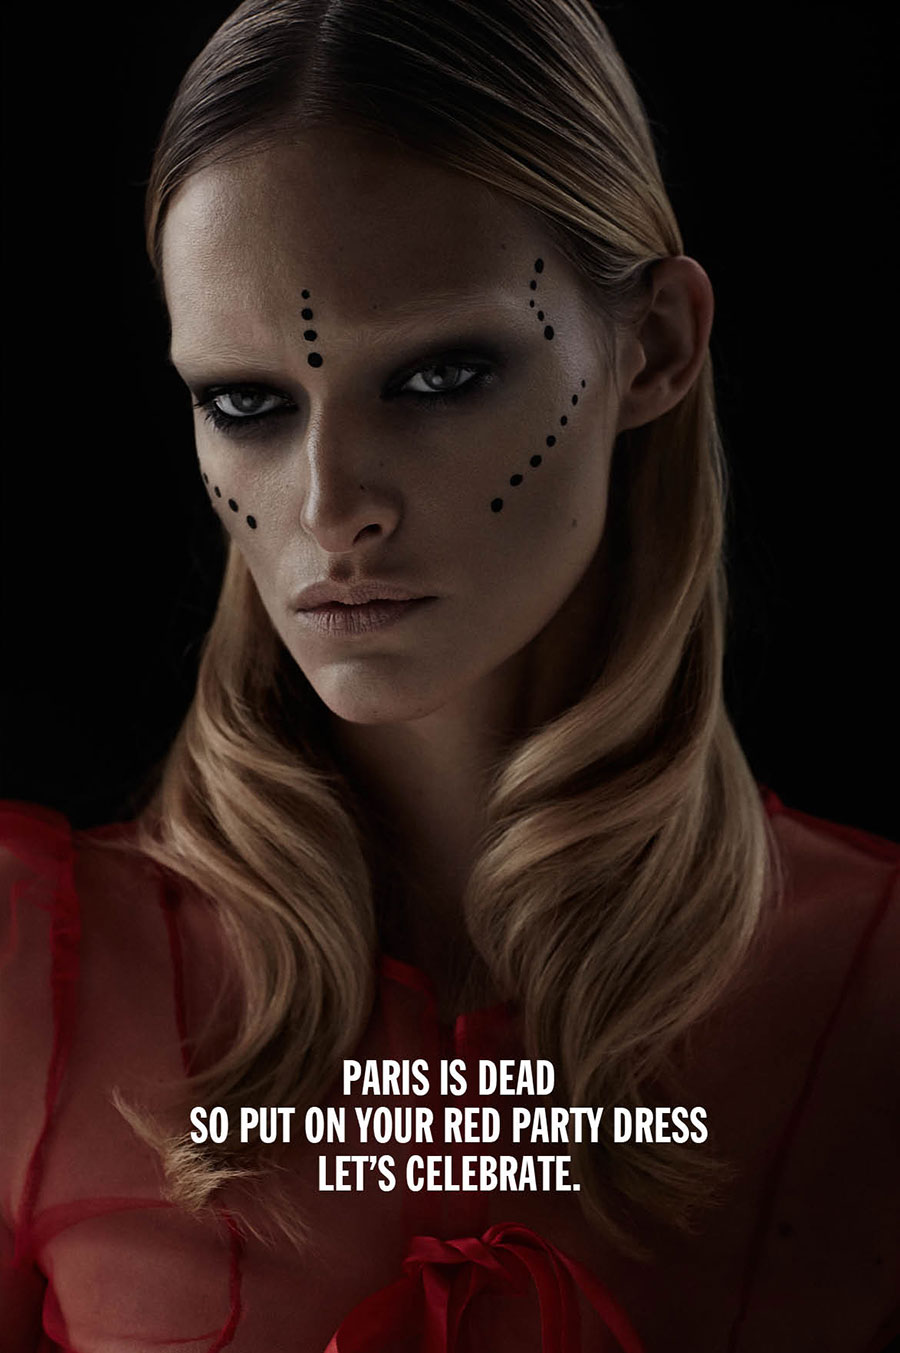 PARIS IS DEAD IS DEAD - VIVE PARIS IS DEAD. Photographer: René Habermacher Model: Nadine Strittmatter @ Next Hair: Yuji Okuda Make-up: Min Kim @ Airport Agency Manucure: Aurélie Chevalier  Dress: Filep Motwary Sandals: Giambattista Valli  Production: The Stimuleye  Thanks to Versae Vanni @ Next.